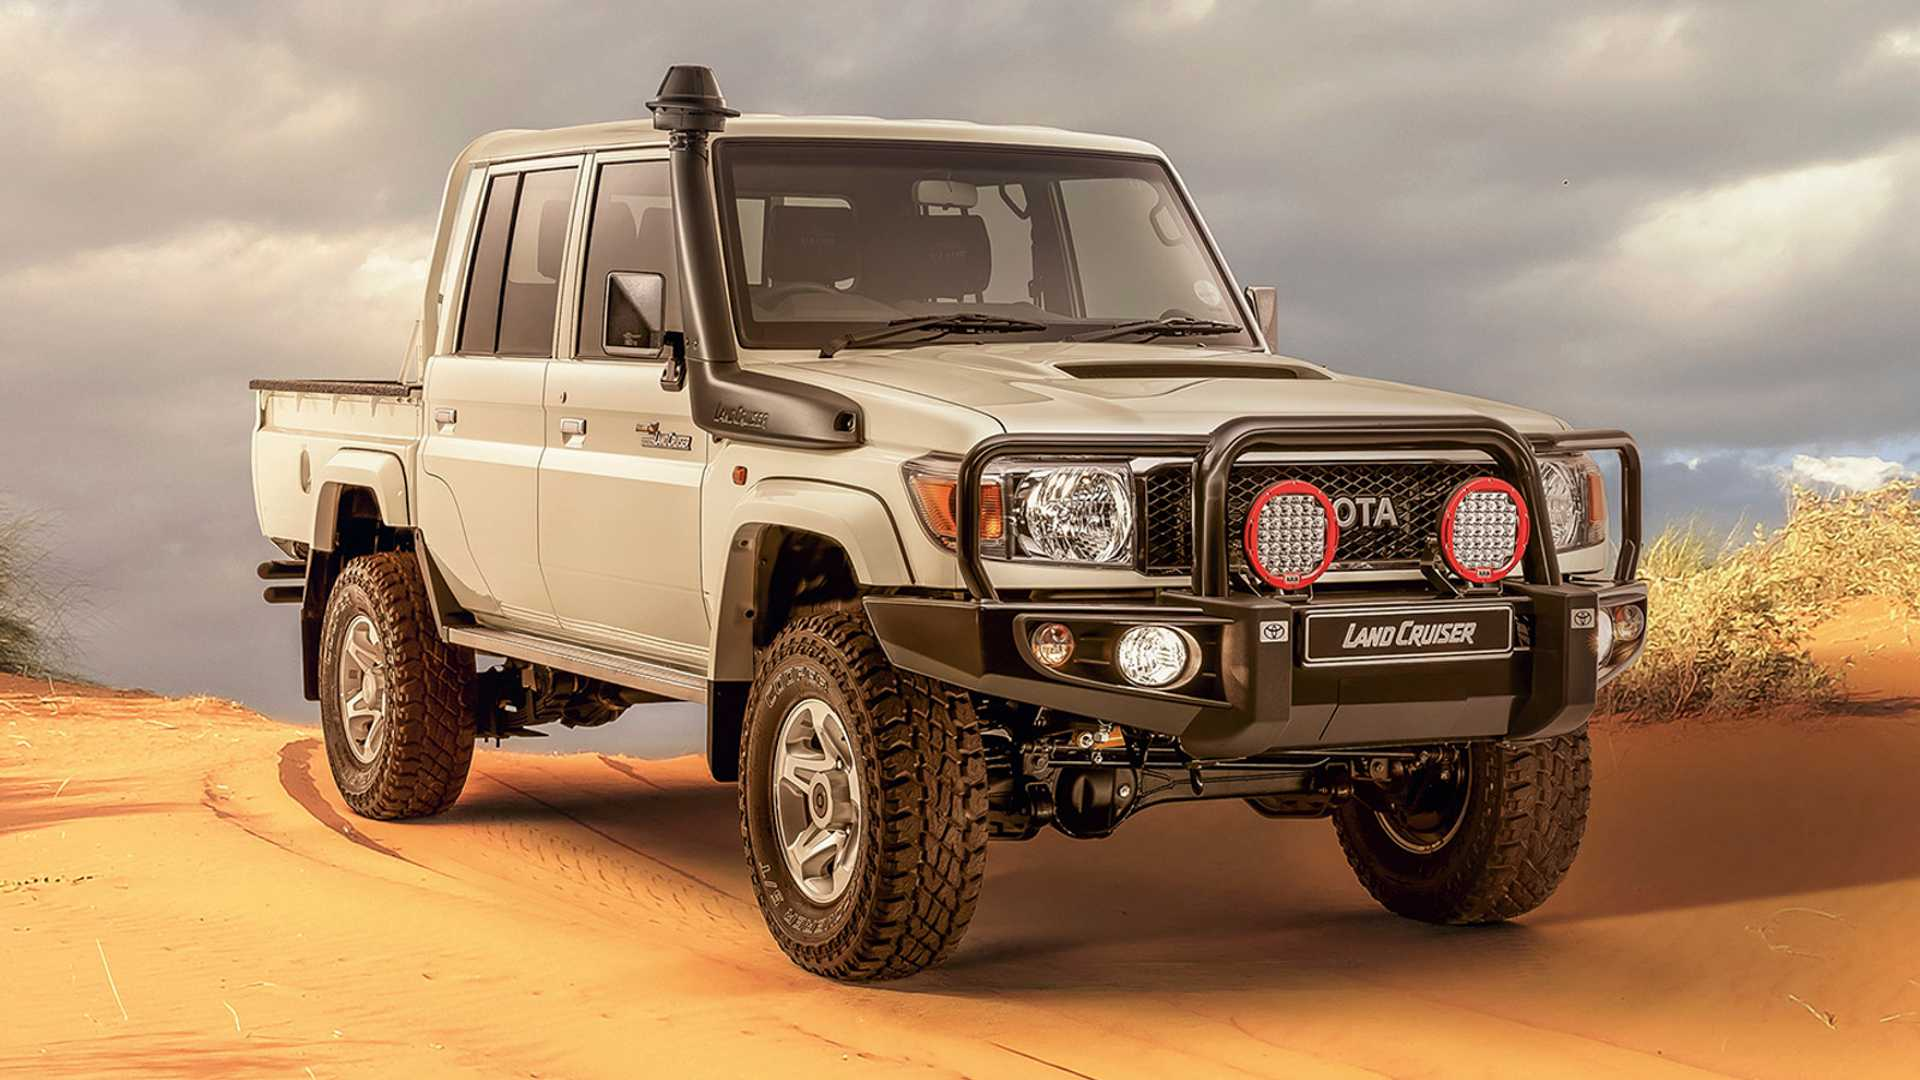 Toyota Land Cruiser Namib Might Be Coolest Car On Sale... In South Africa